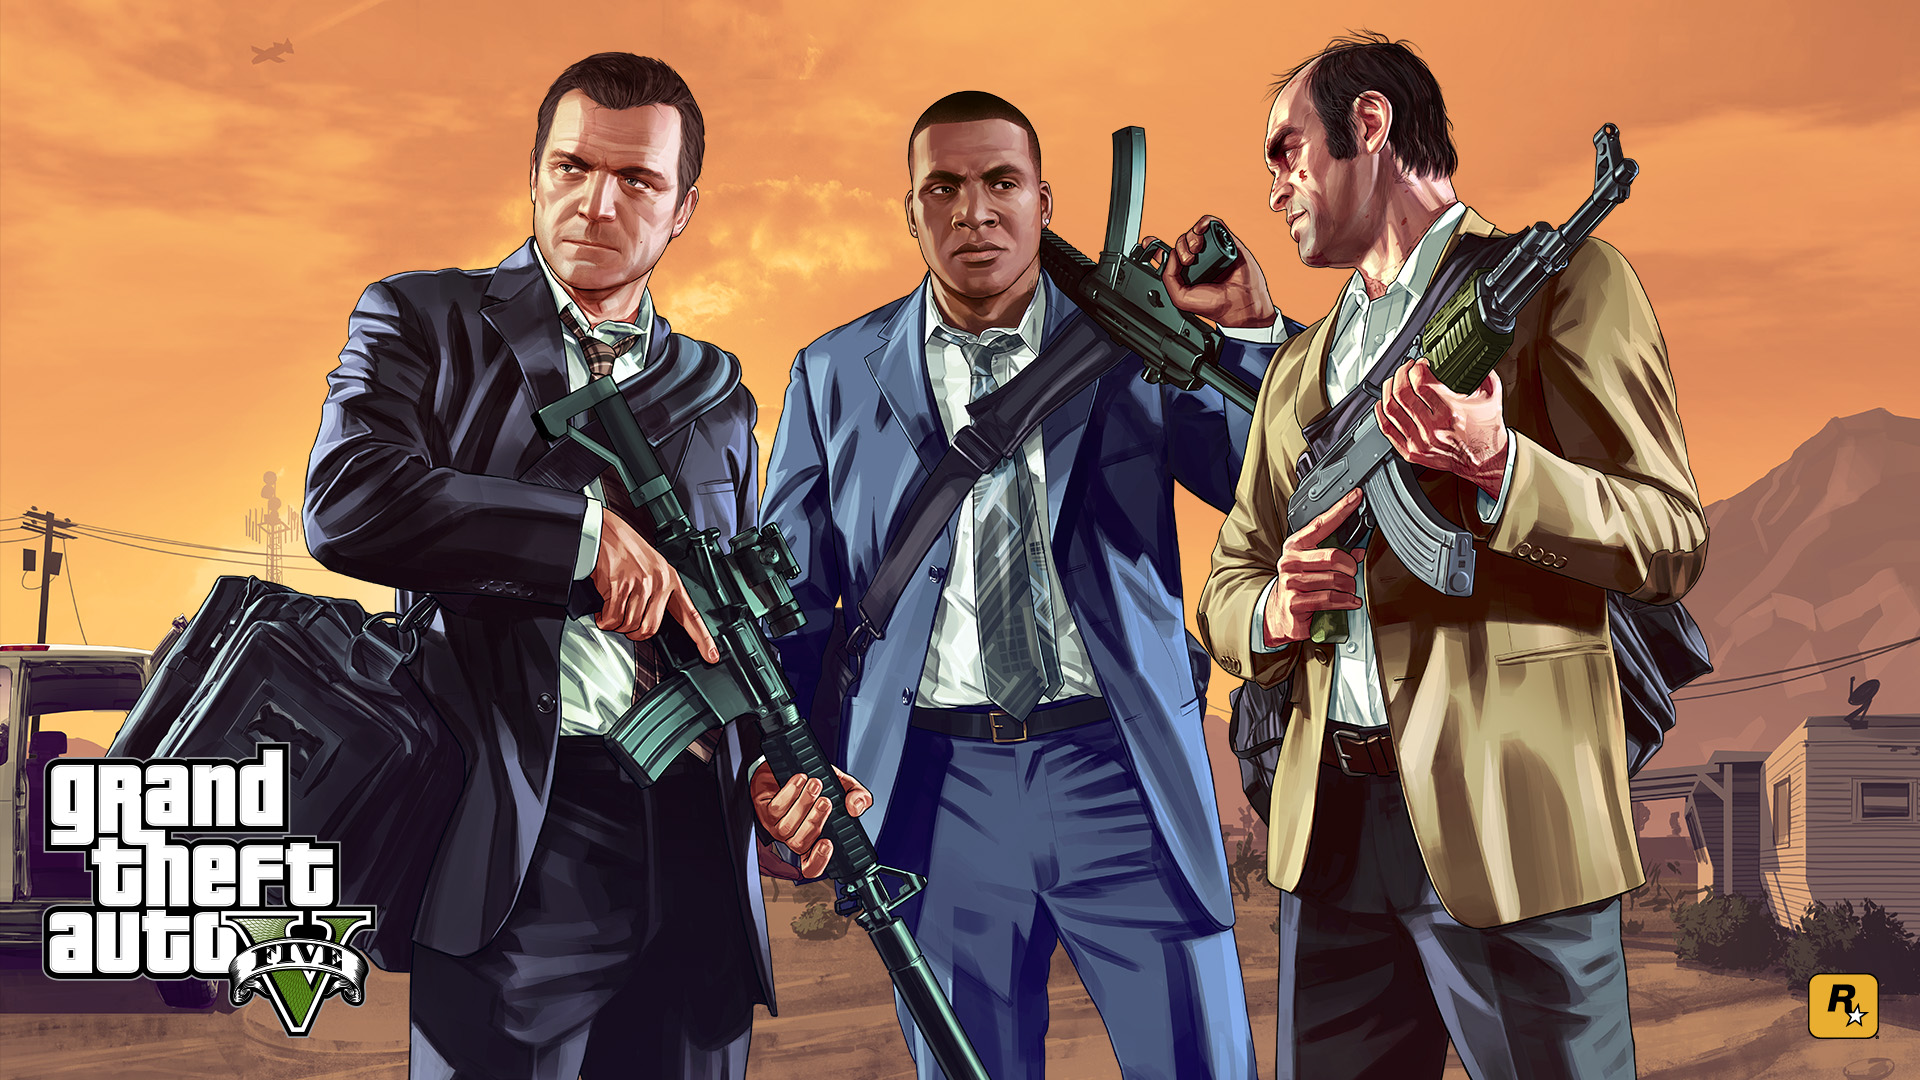 gta5 braquage - GTA5france.com